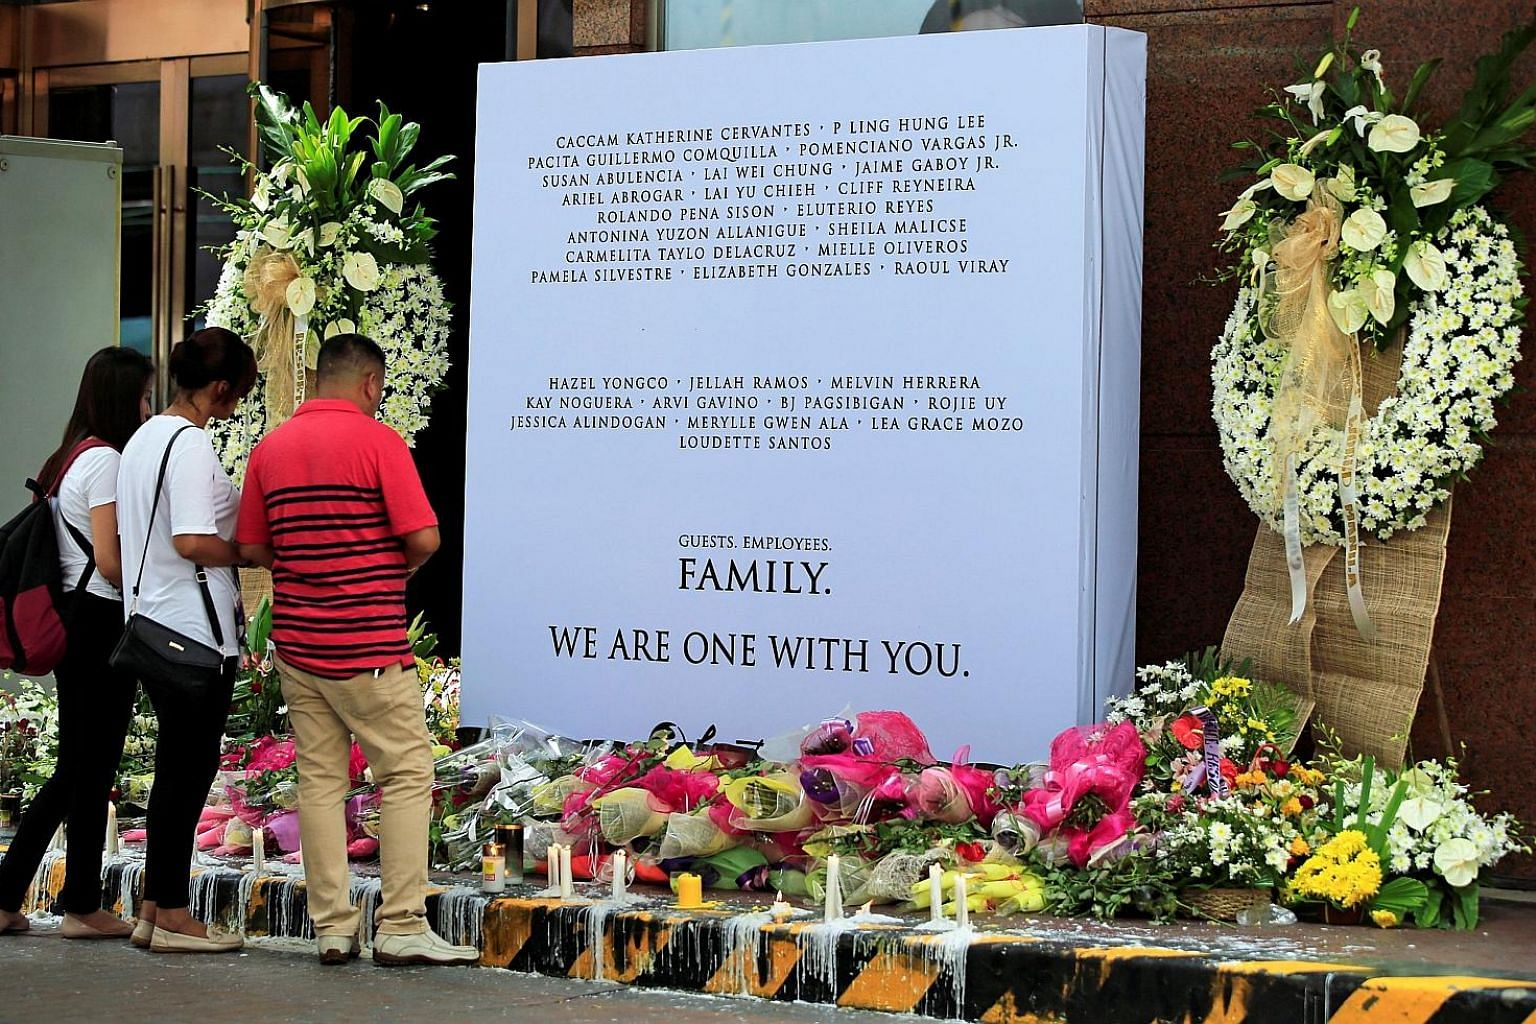 Employees paying their respects to those killed in the casino fires, at a memorial at Resorts World Manila on Sunday. Gunman Jessie Javier Carlos set alight a number of rooms at the complex, claiming the lives of 37 people.